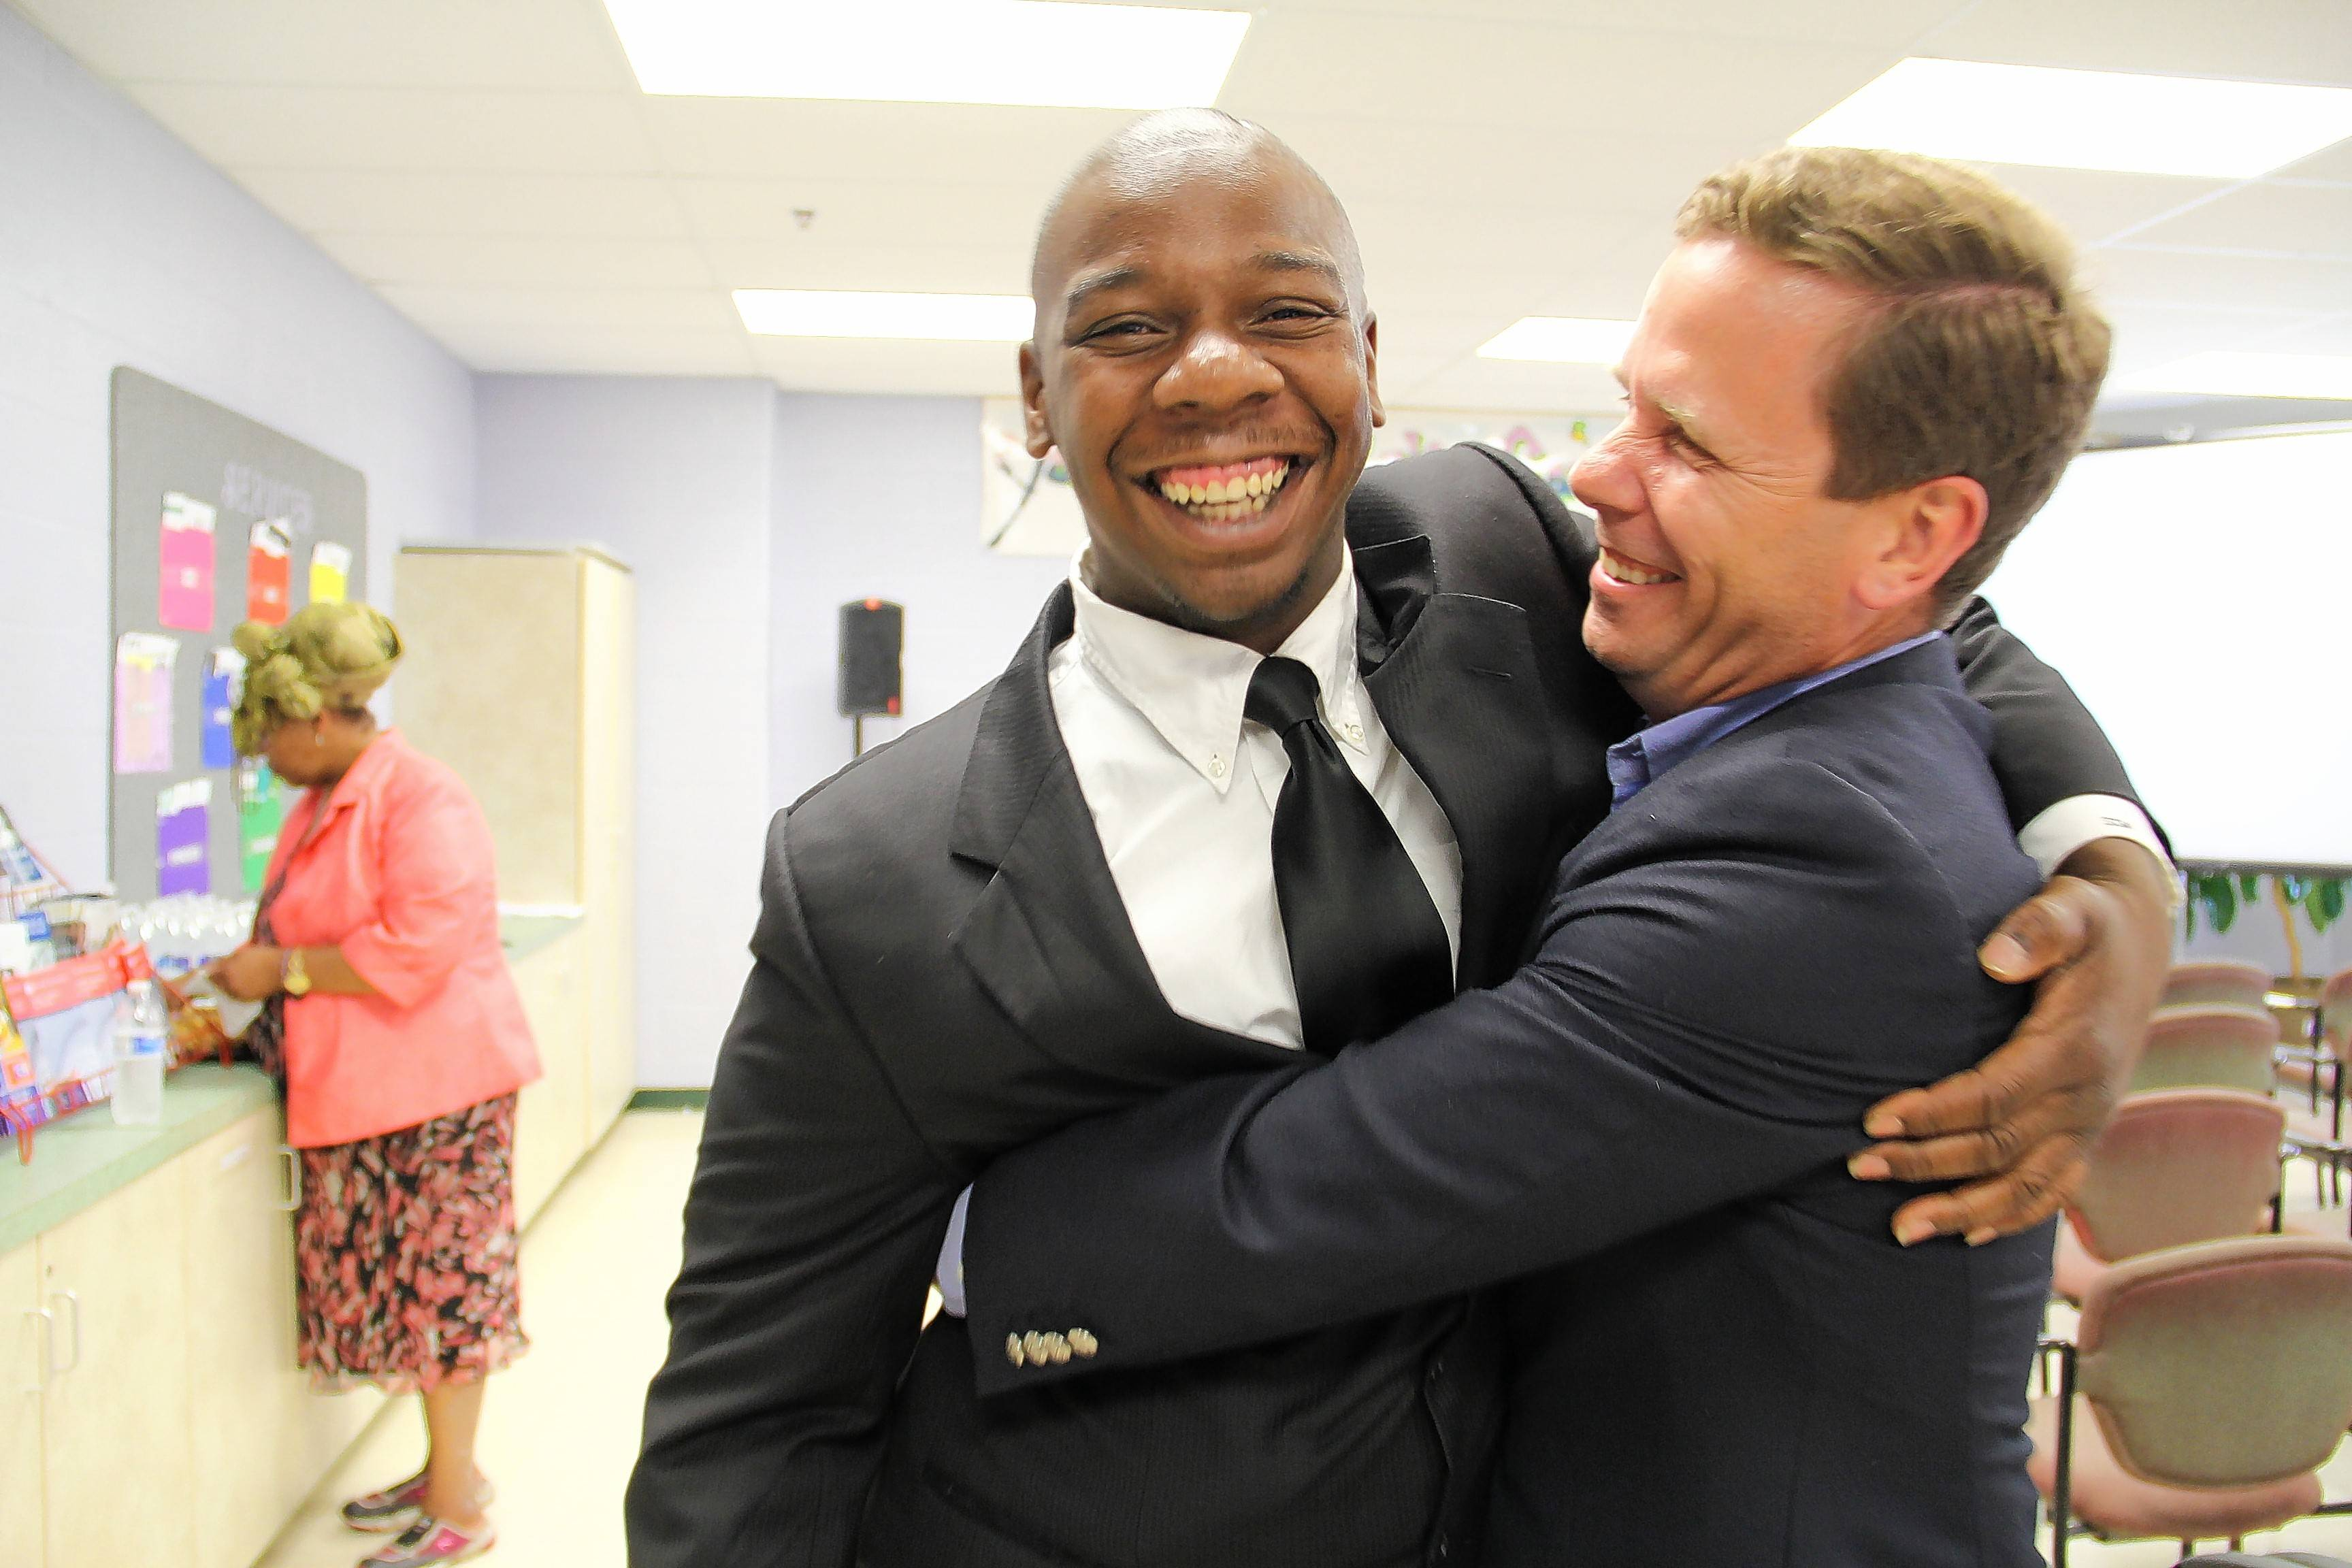 U.S. Rep. Bob Dold has invited Lavelle Brown, left, to the State of the Union address.